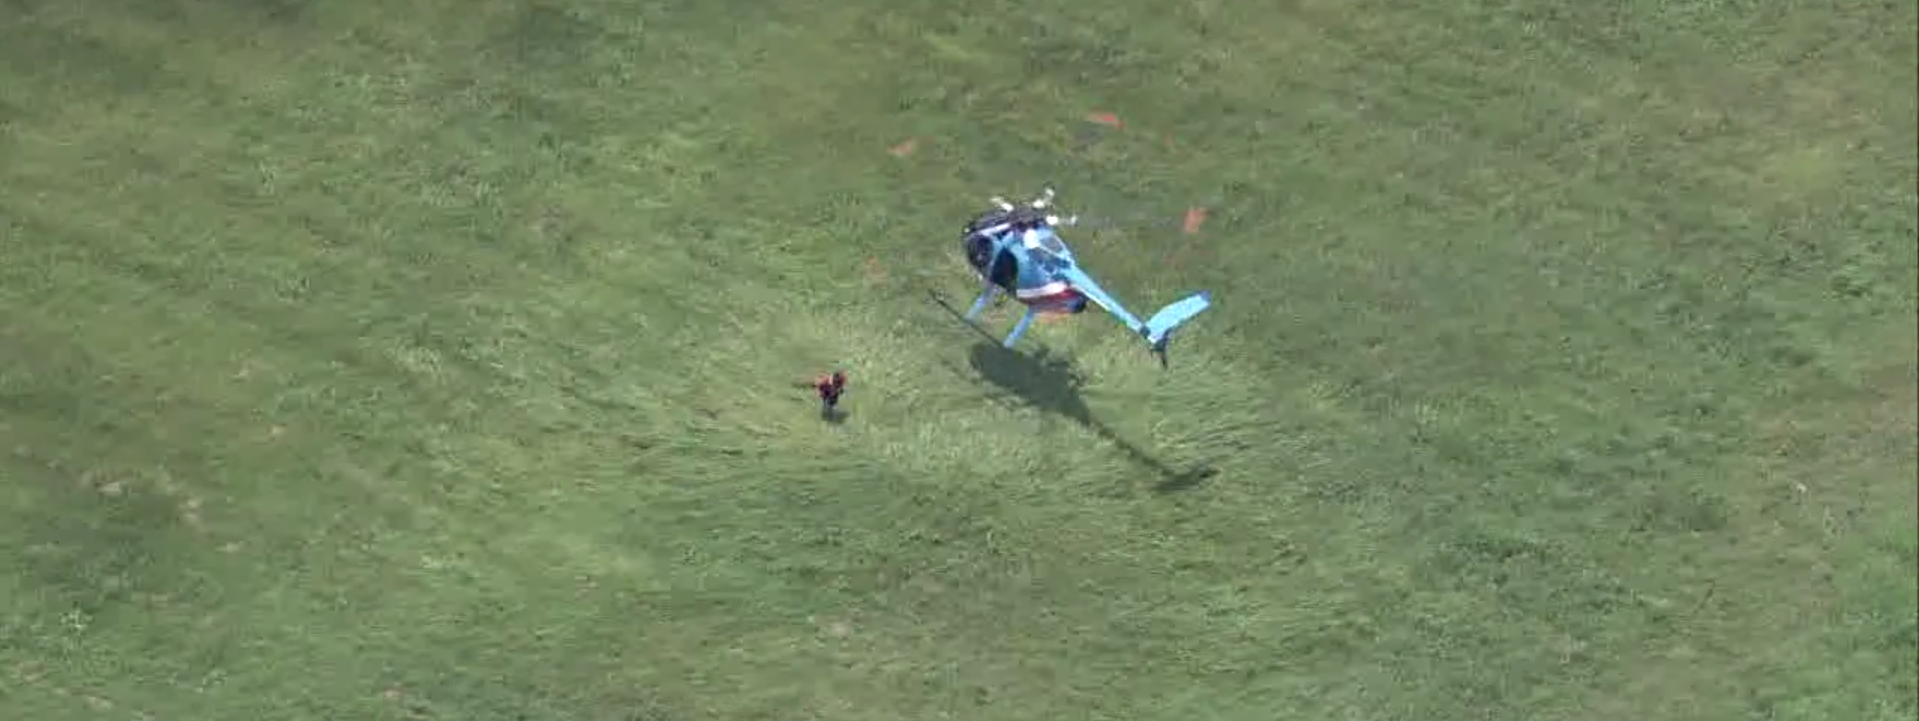 Screenshot from Fox local video of police helicopter pilot tackling suspect.